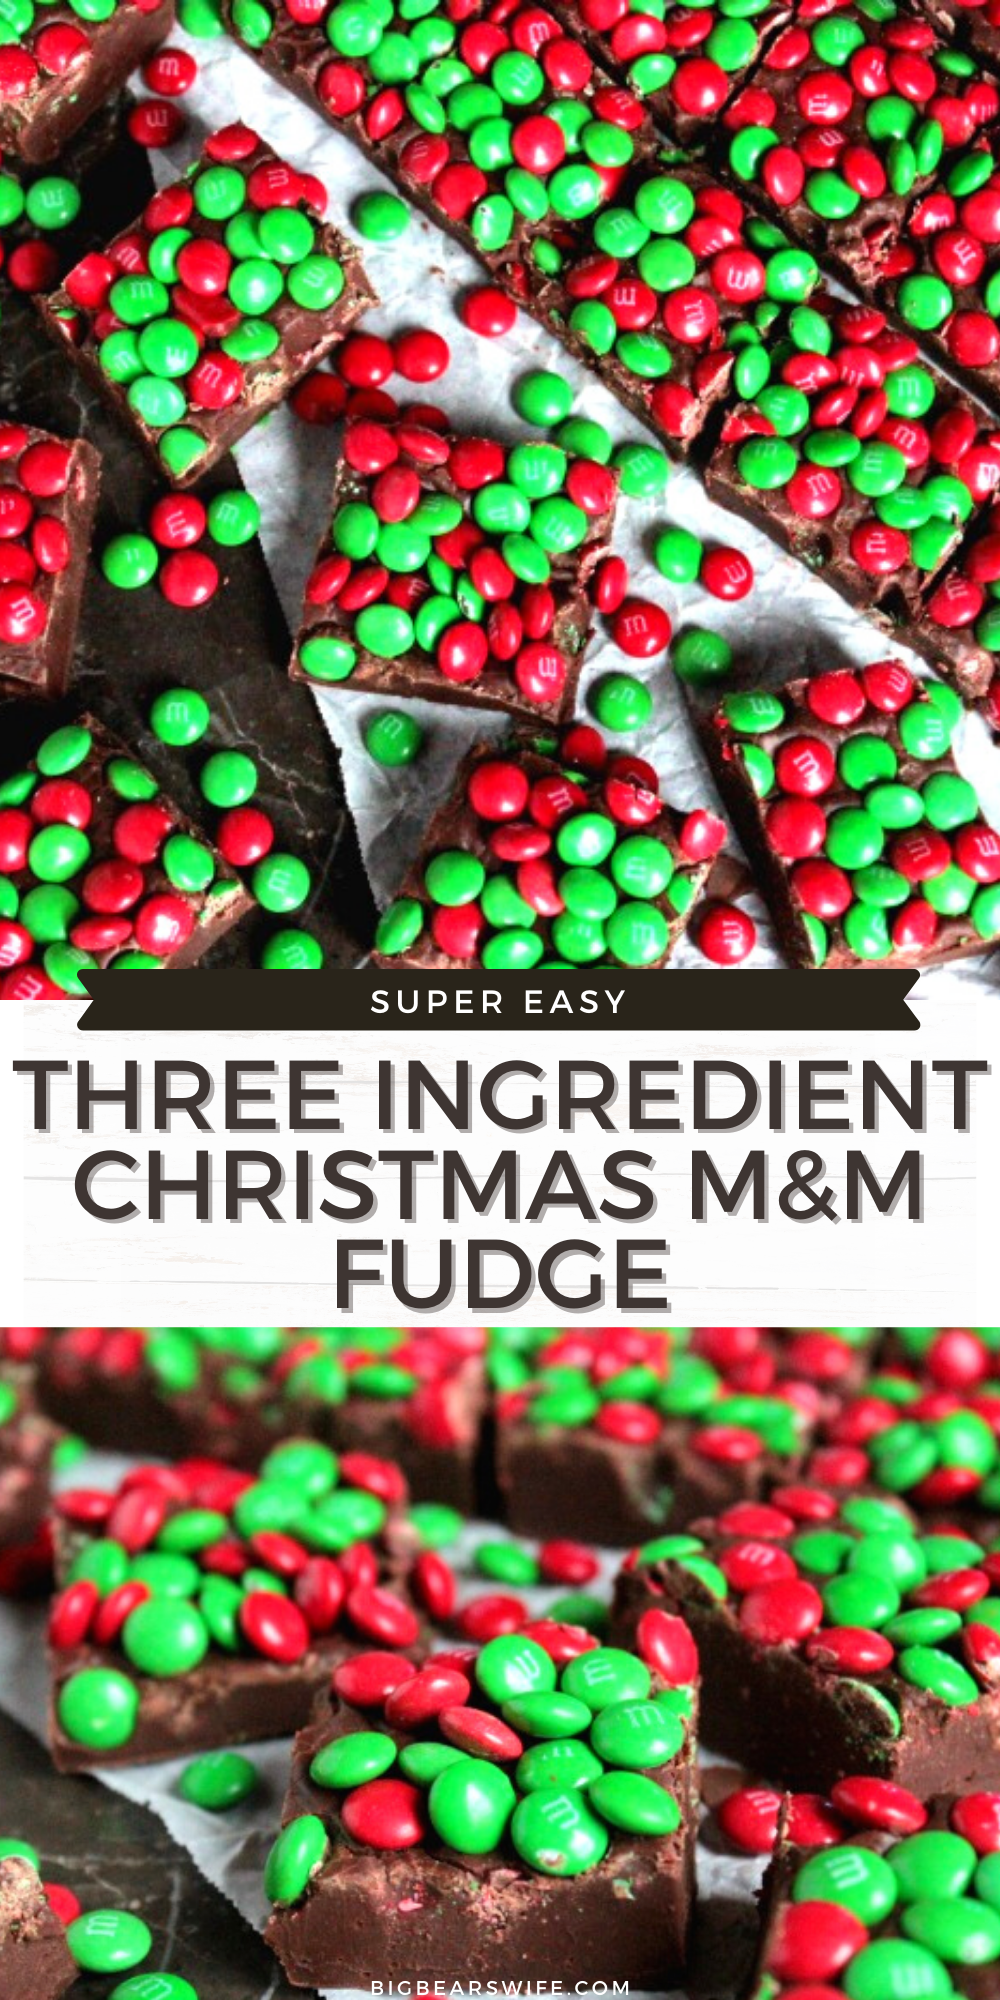 Pack up a few trays of this Three Ingredient Christmas M&M Fudge into cute little Christmas tins and hand them out to friends and family this holiday season! This fudge is so simple to make that you'll want to make it for every holiday! via @bigbearswife